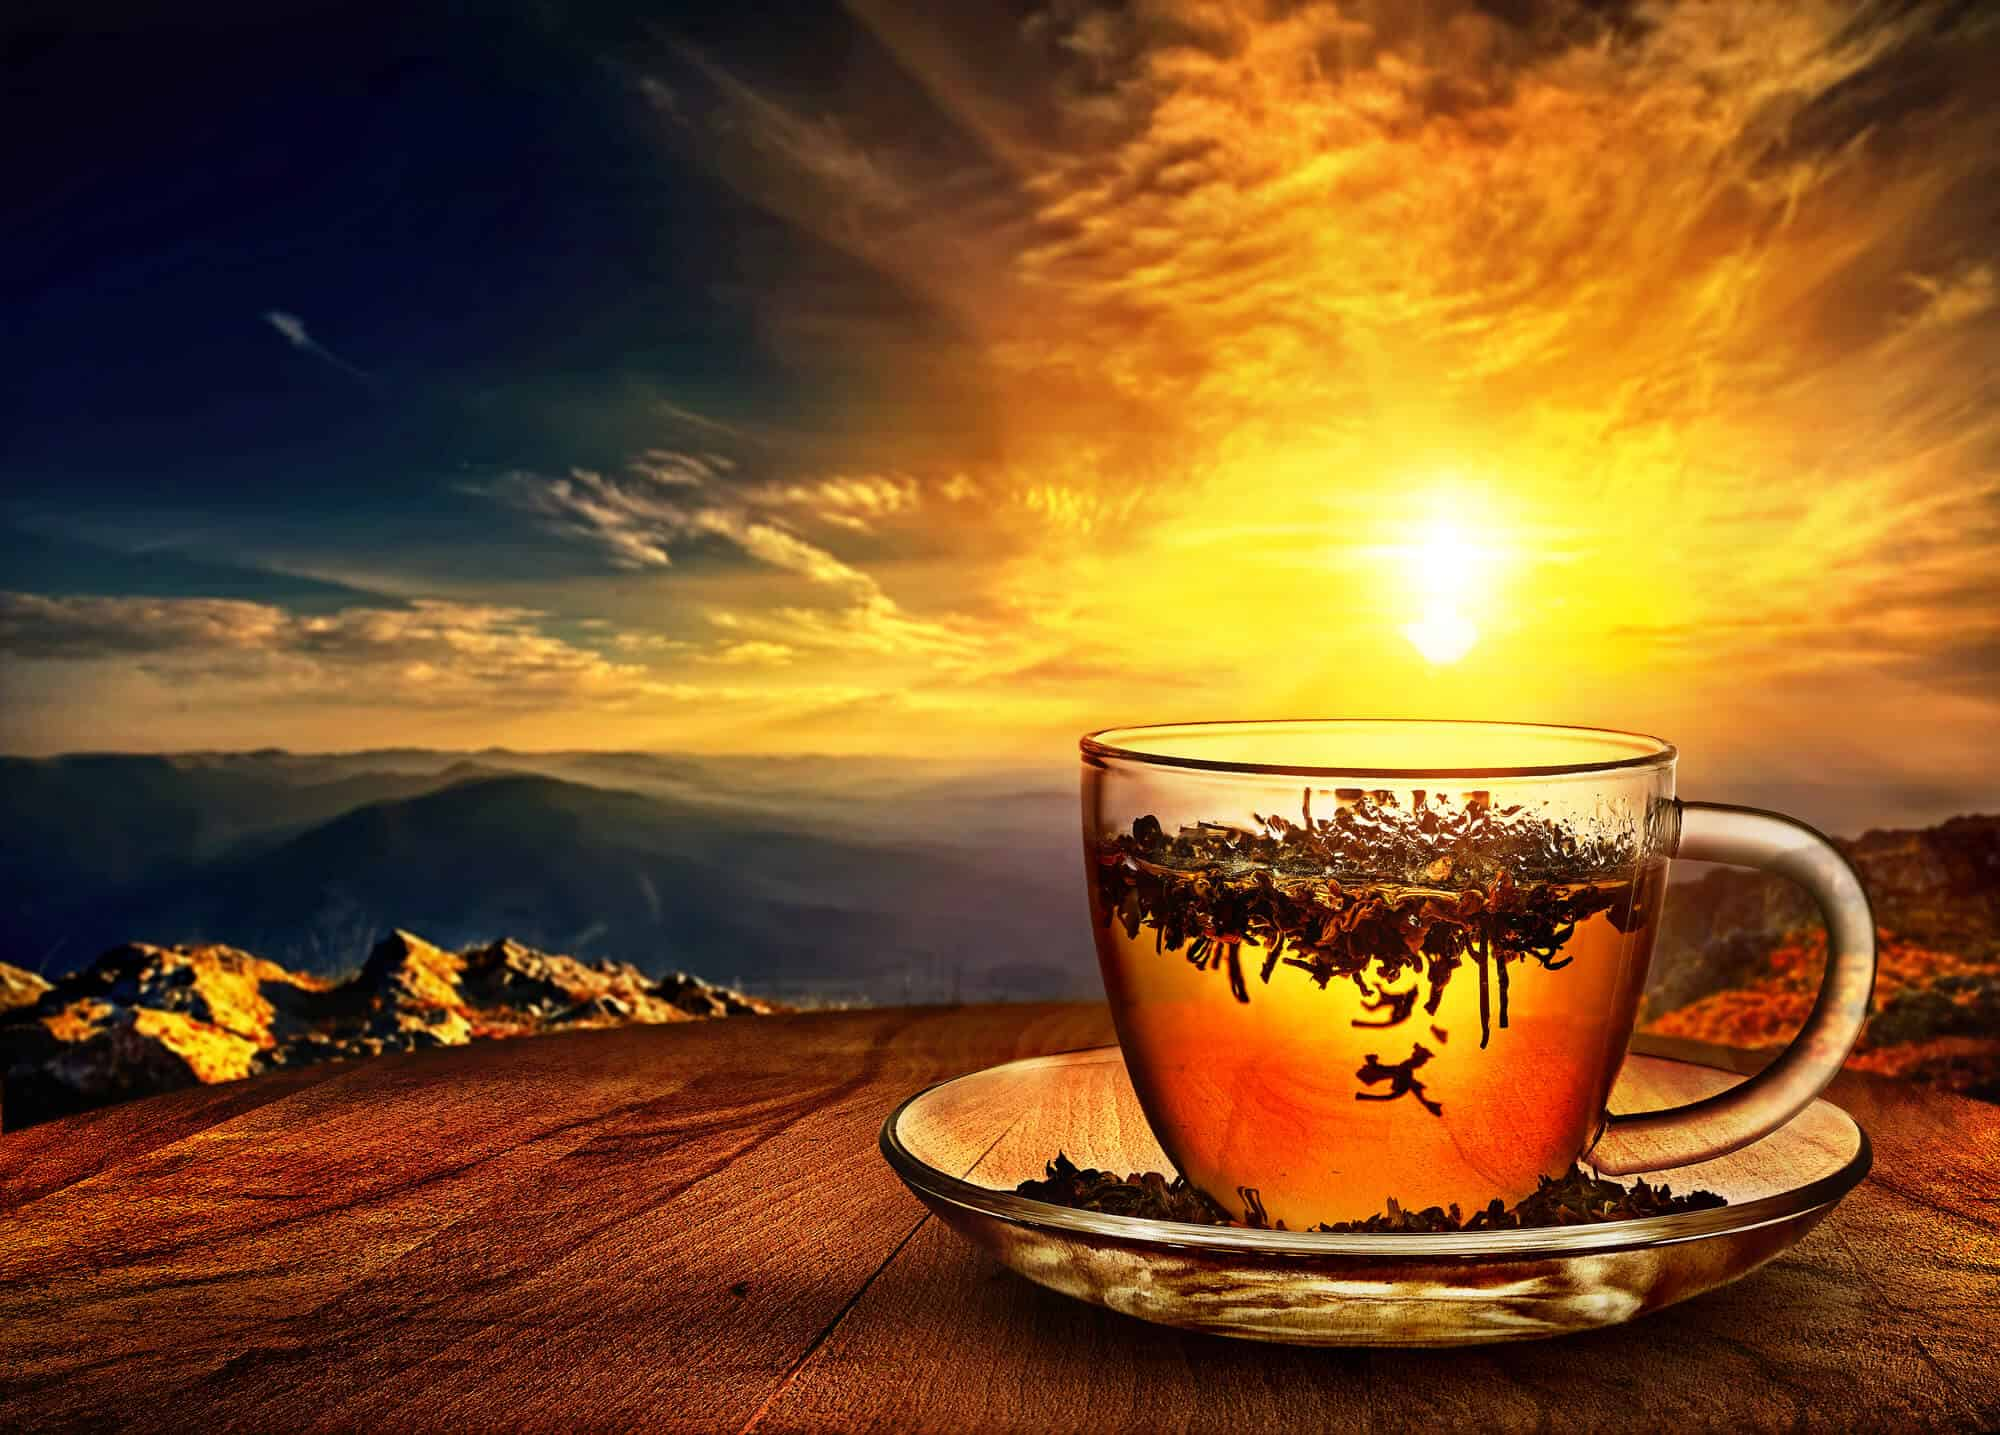 Tea cup on a table with the sun setting. how is tea made?